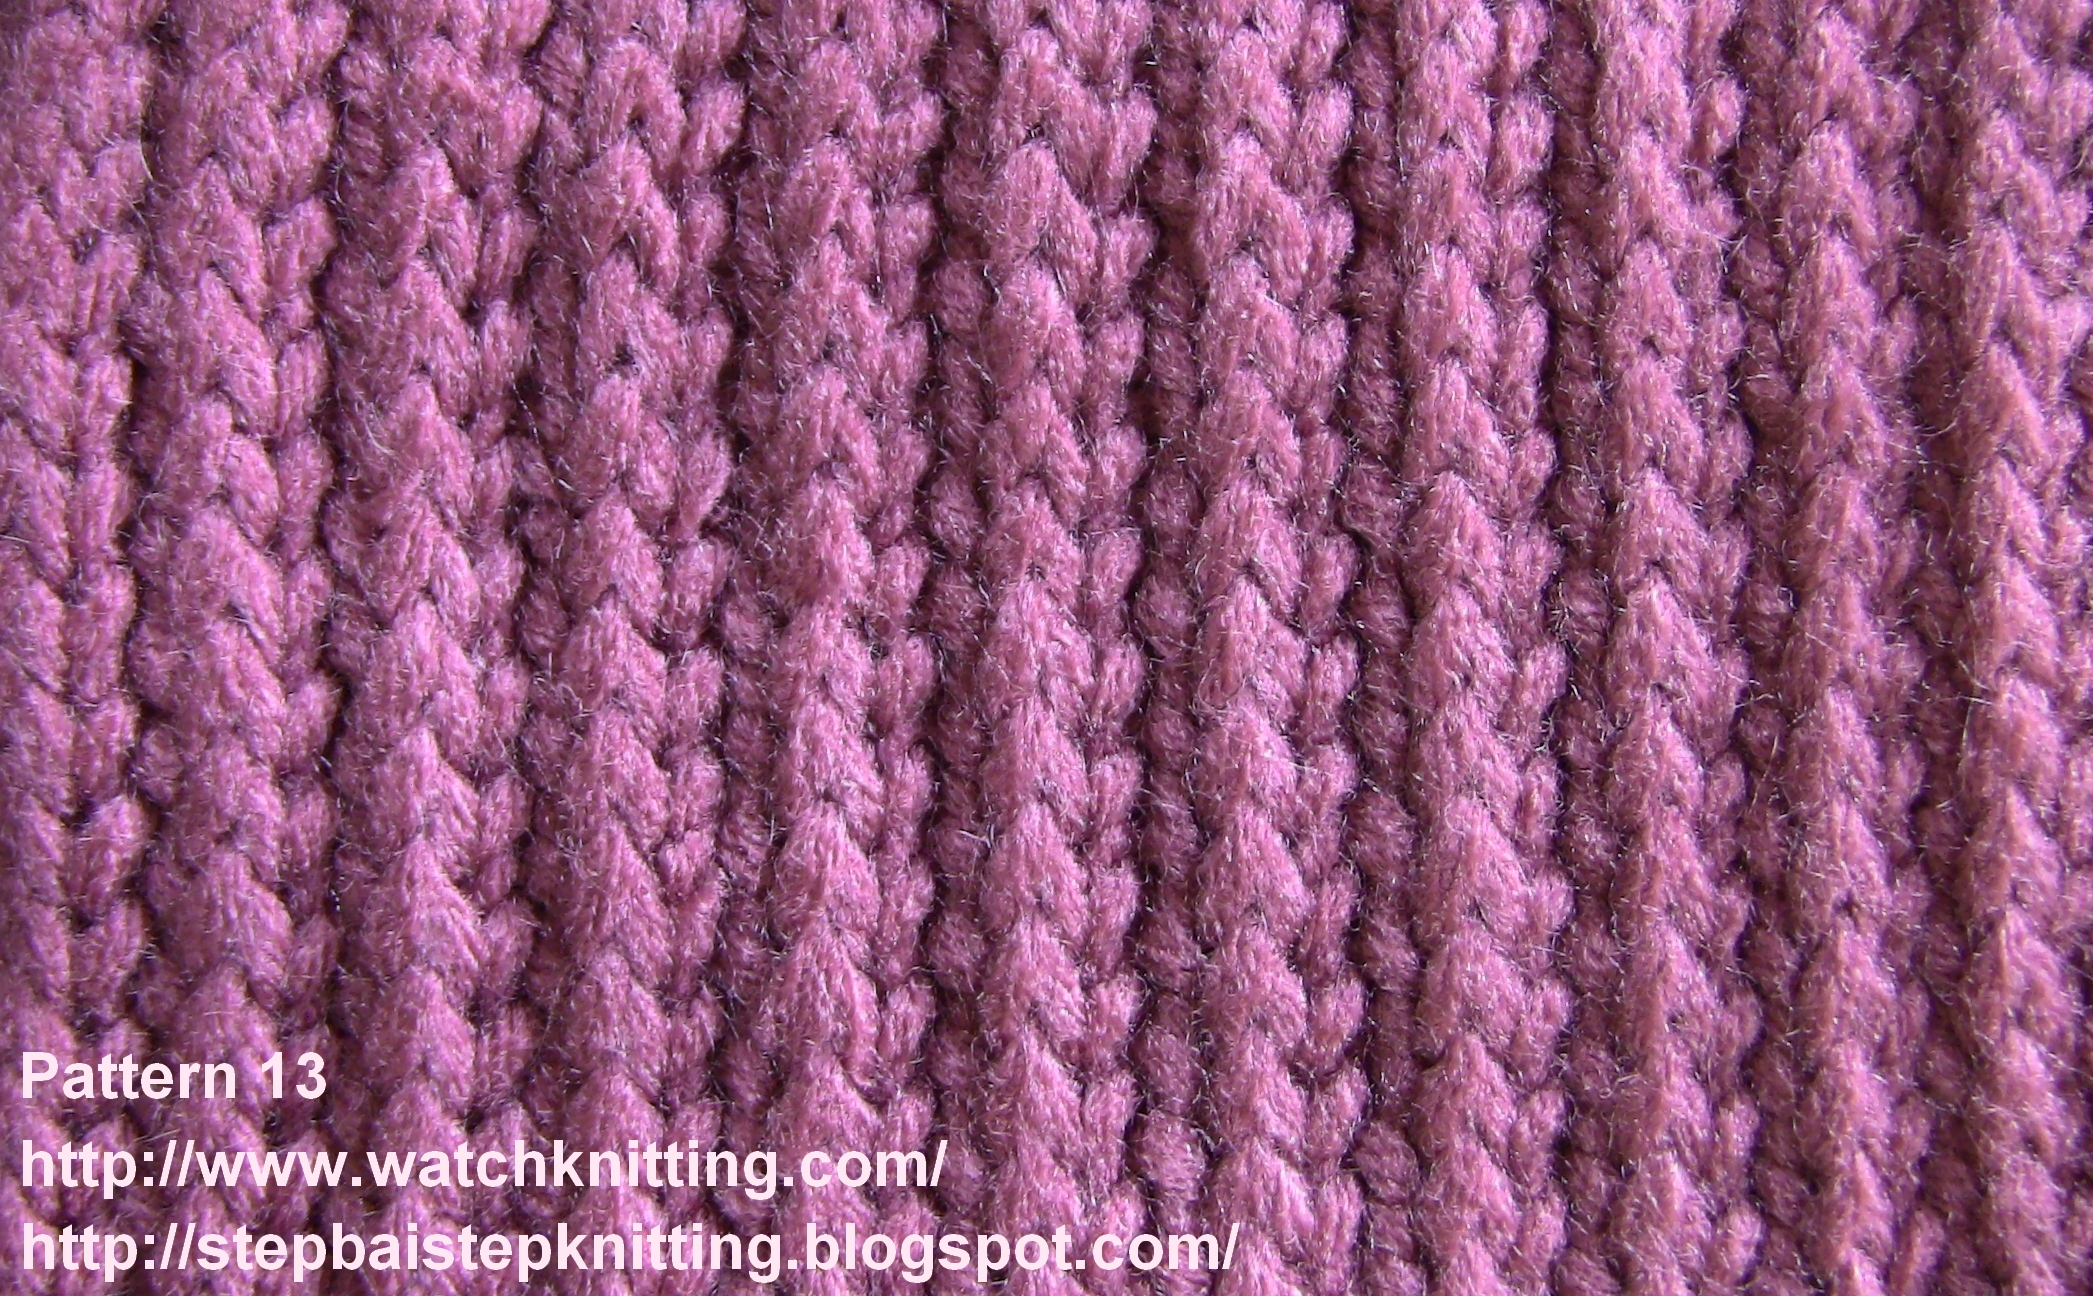 easy knitting pattern - Knitting for charity?